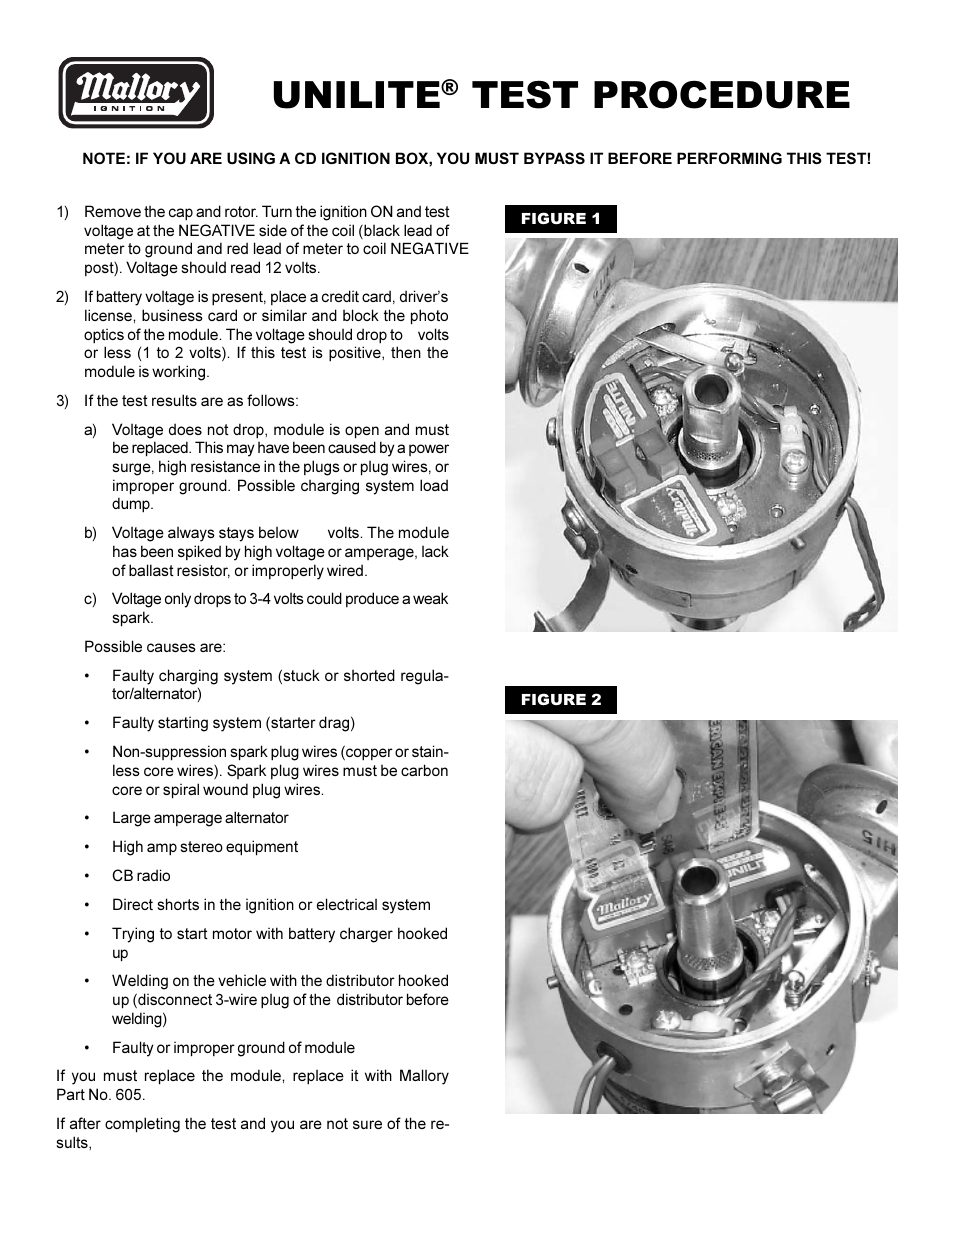 mallory ignition mallory unilite test procedure user manual | 1 page | also  for: mallory unilite test procedure 605